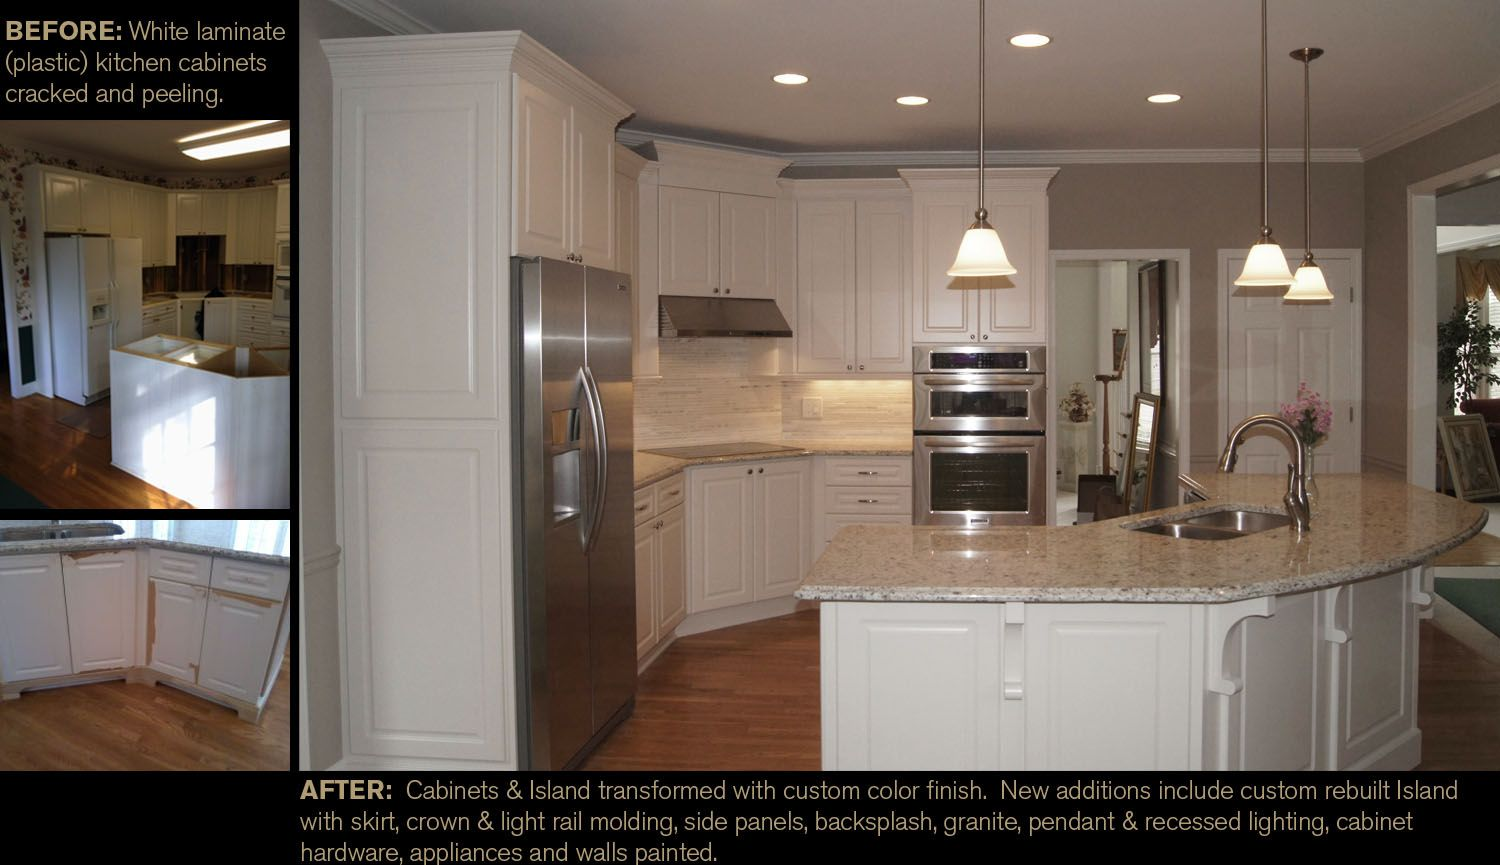 From white peeling laminate plastic cabinets to a updated and